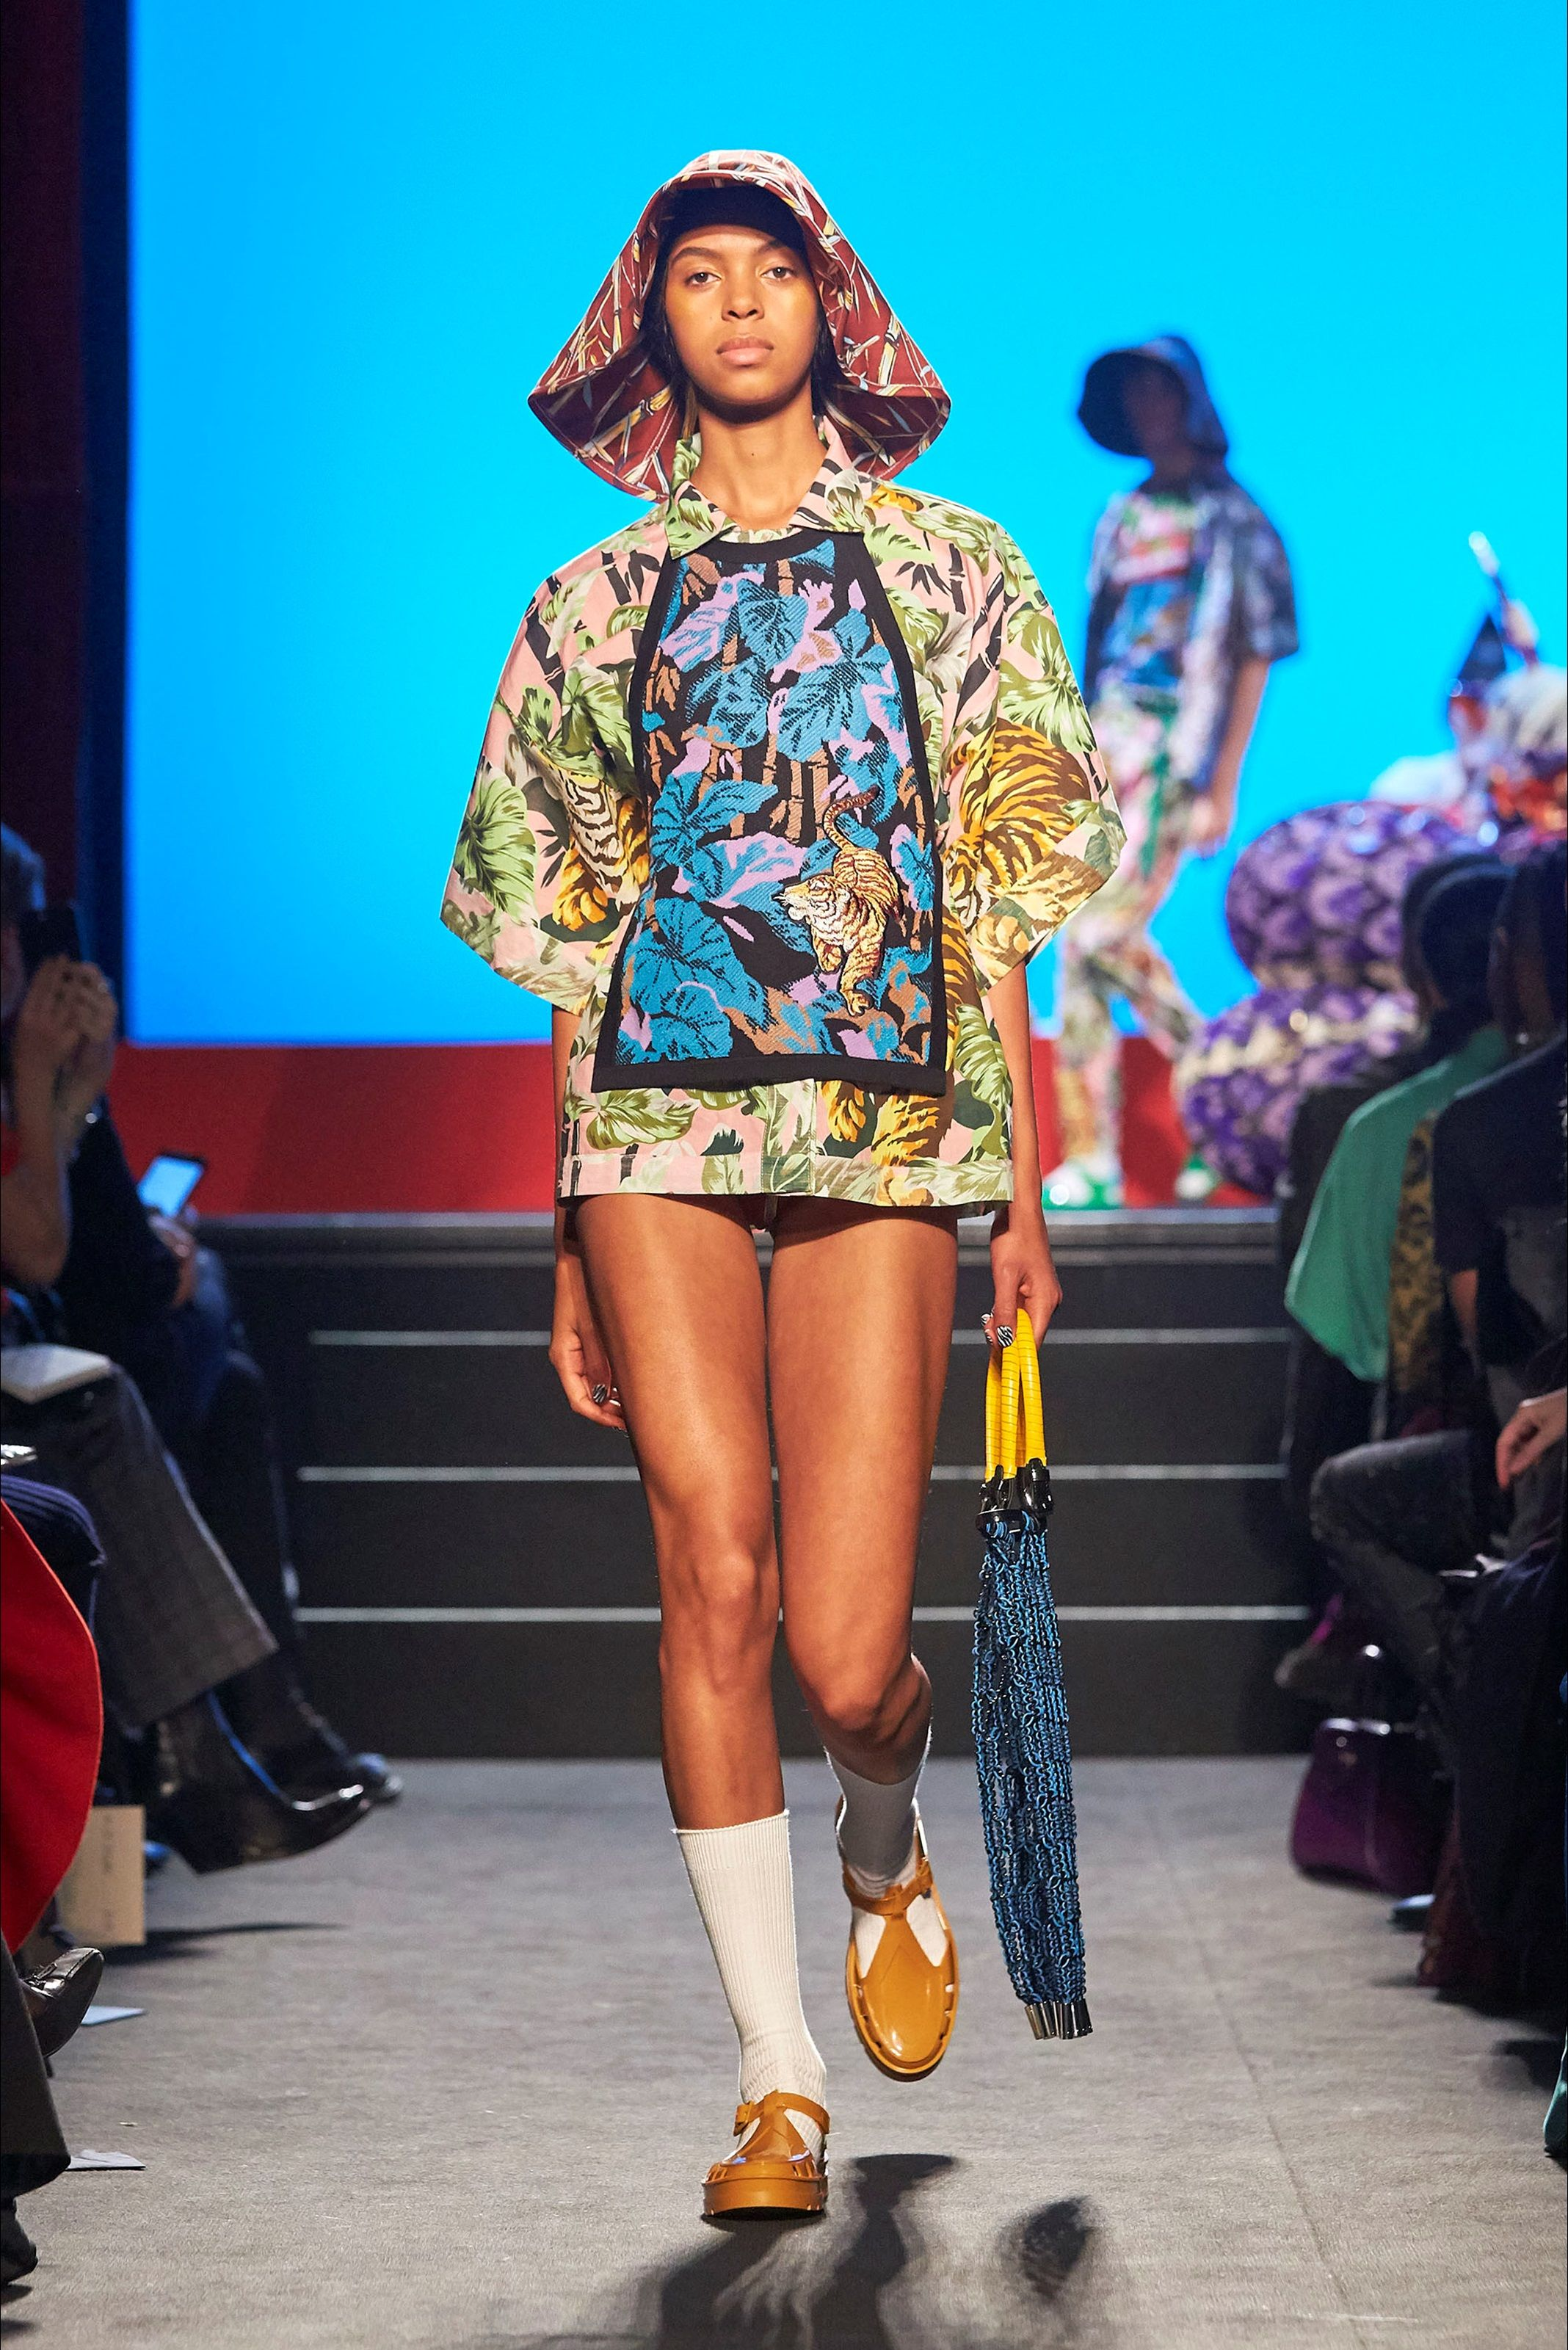 83d8efe25 Kenzo La Collection Memento Spring Summer 2018 Ready-To-Wearcollection